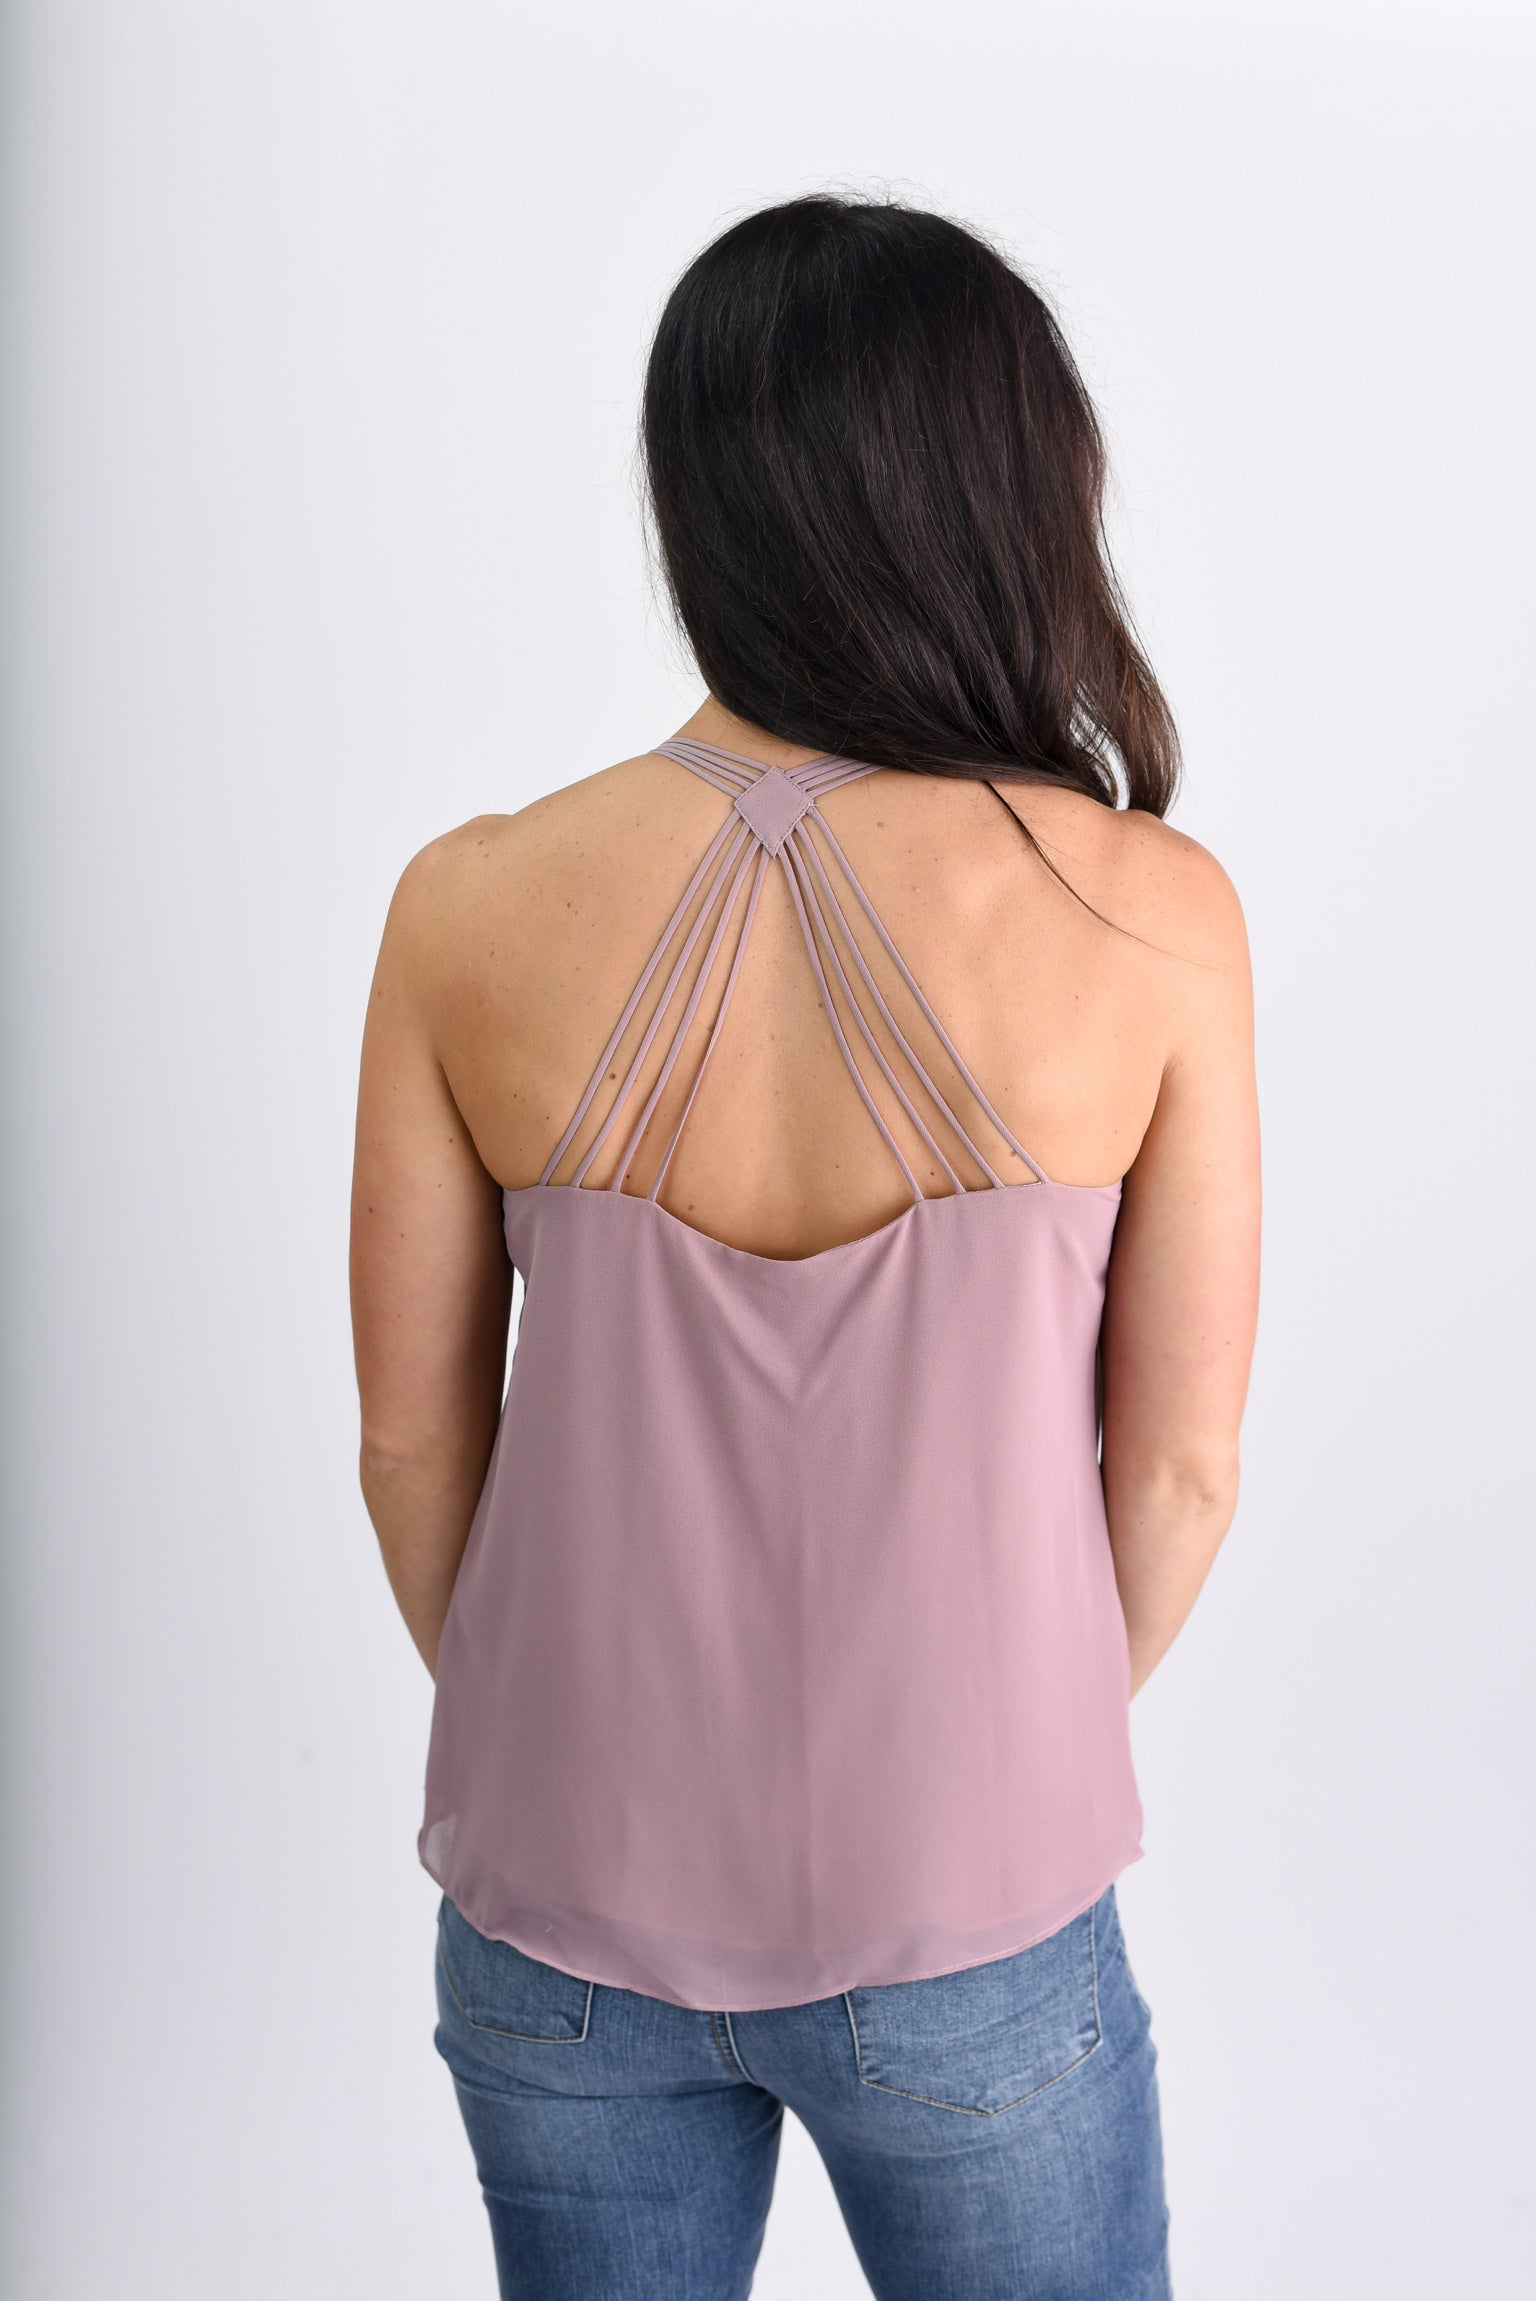 Don't Look Back Strappy Cami - Mauve